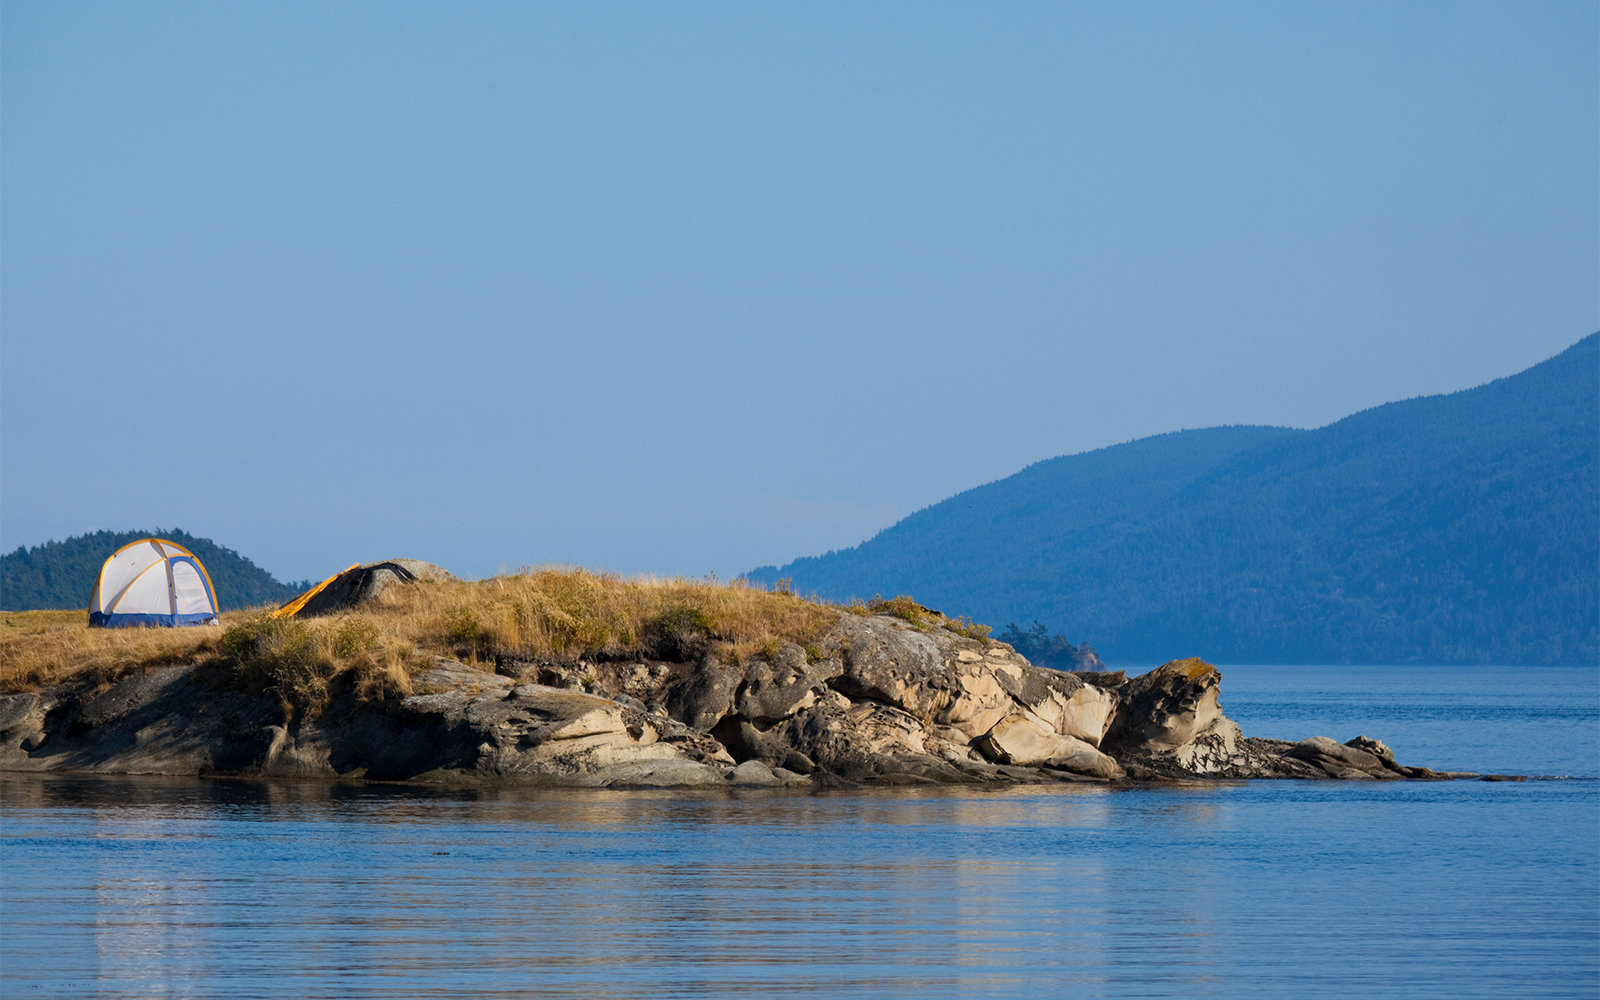 2. San Juan Islands, Washington